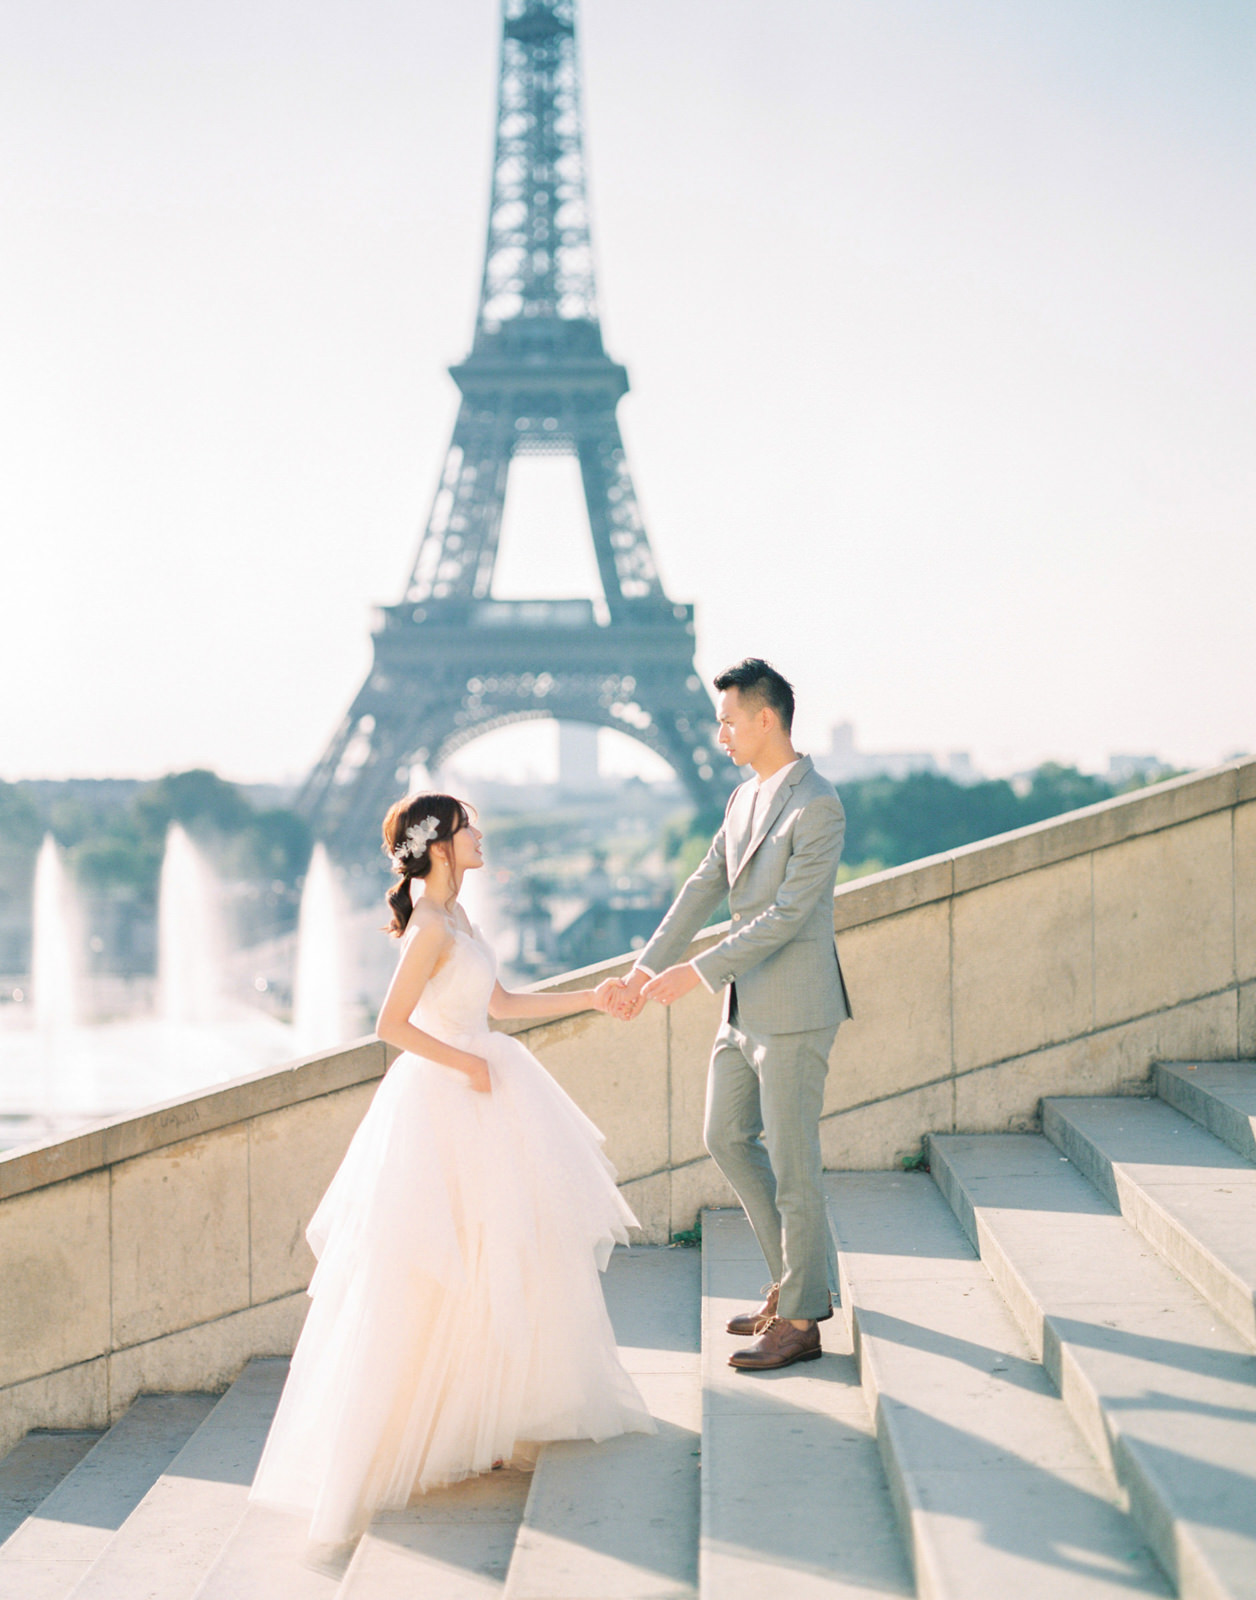 Eiffel Tower Paris Destination Enagement Photography by CHYMO &